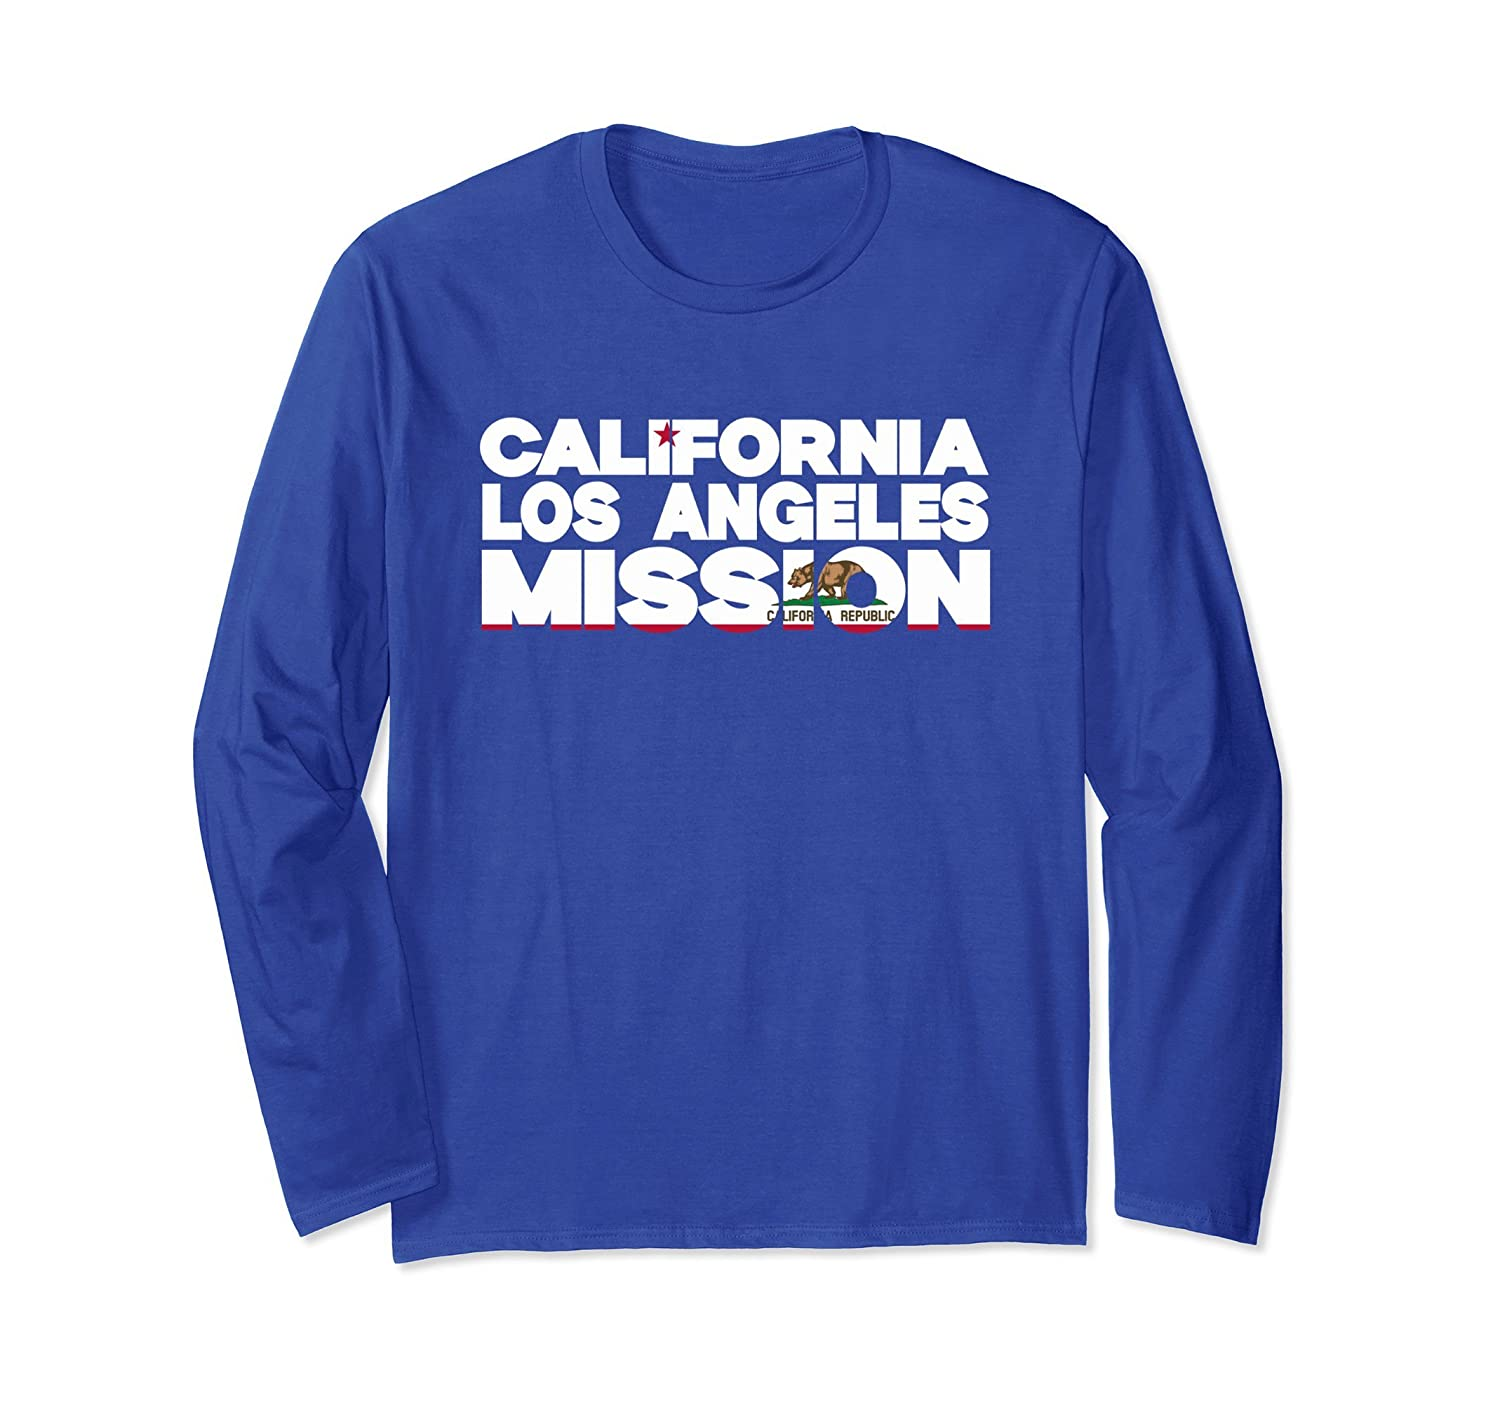 California Los Angeles Mission t-shirt-TH